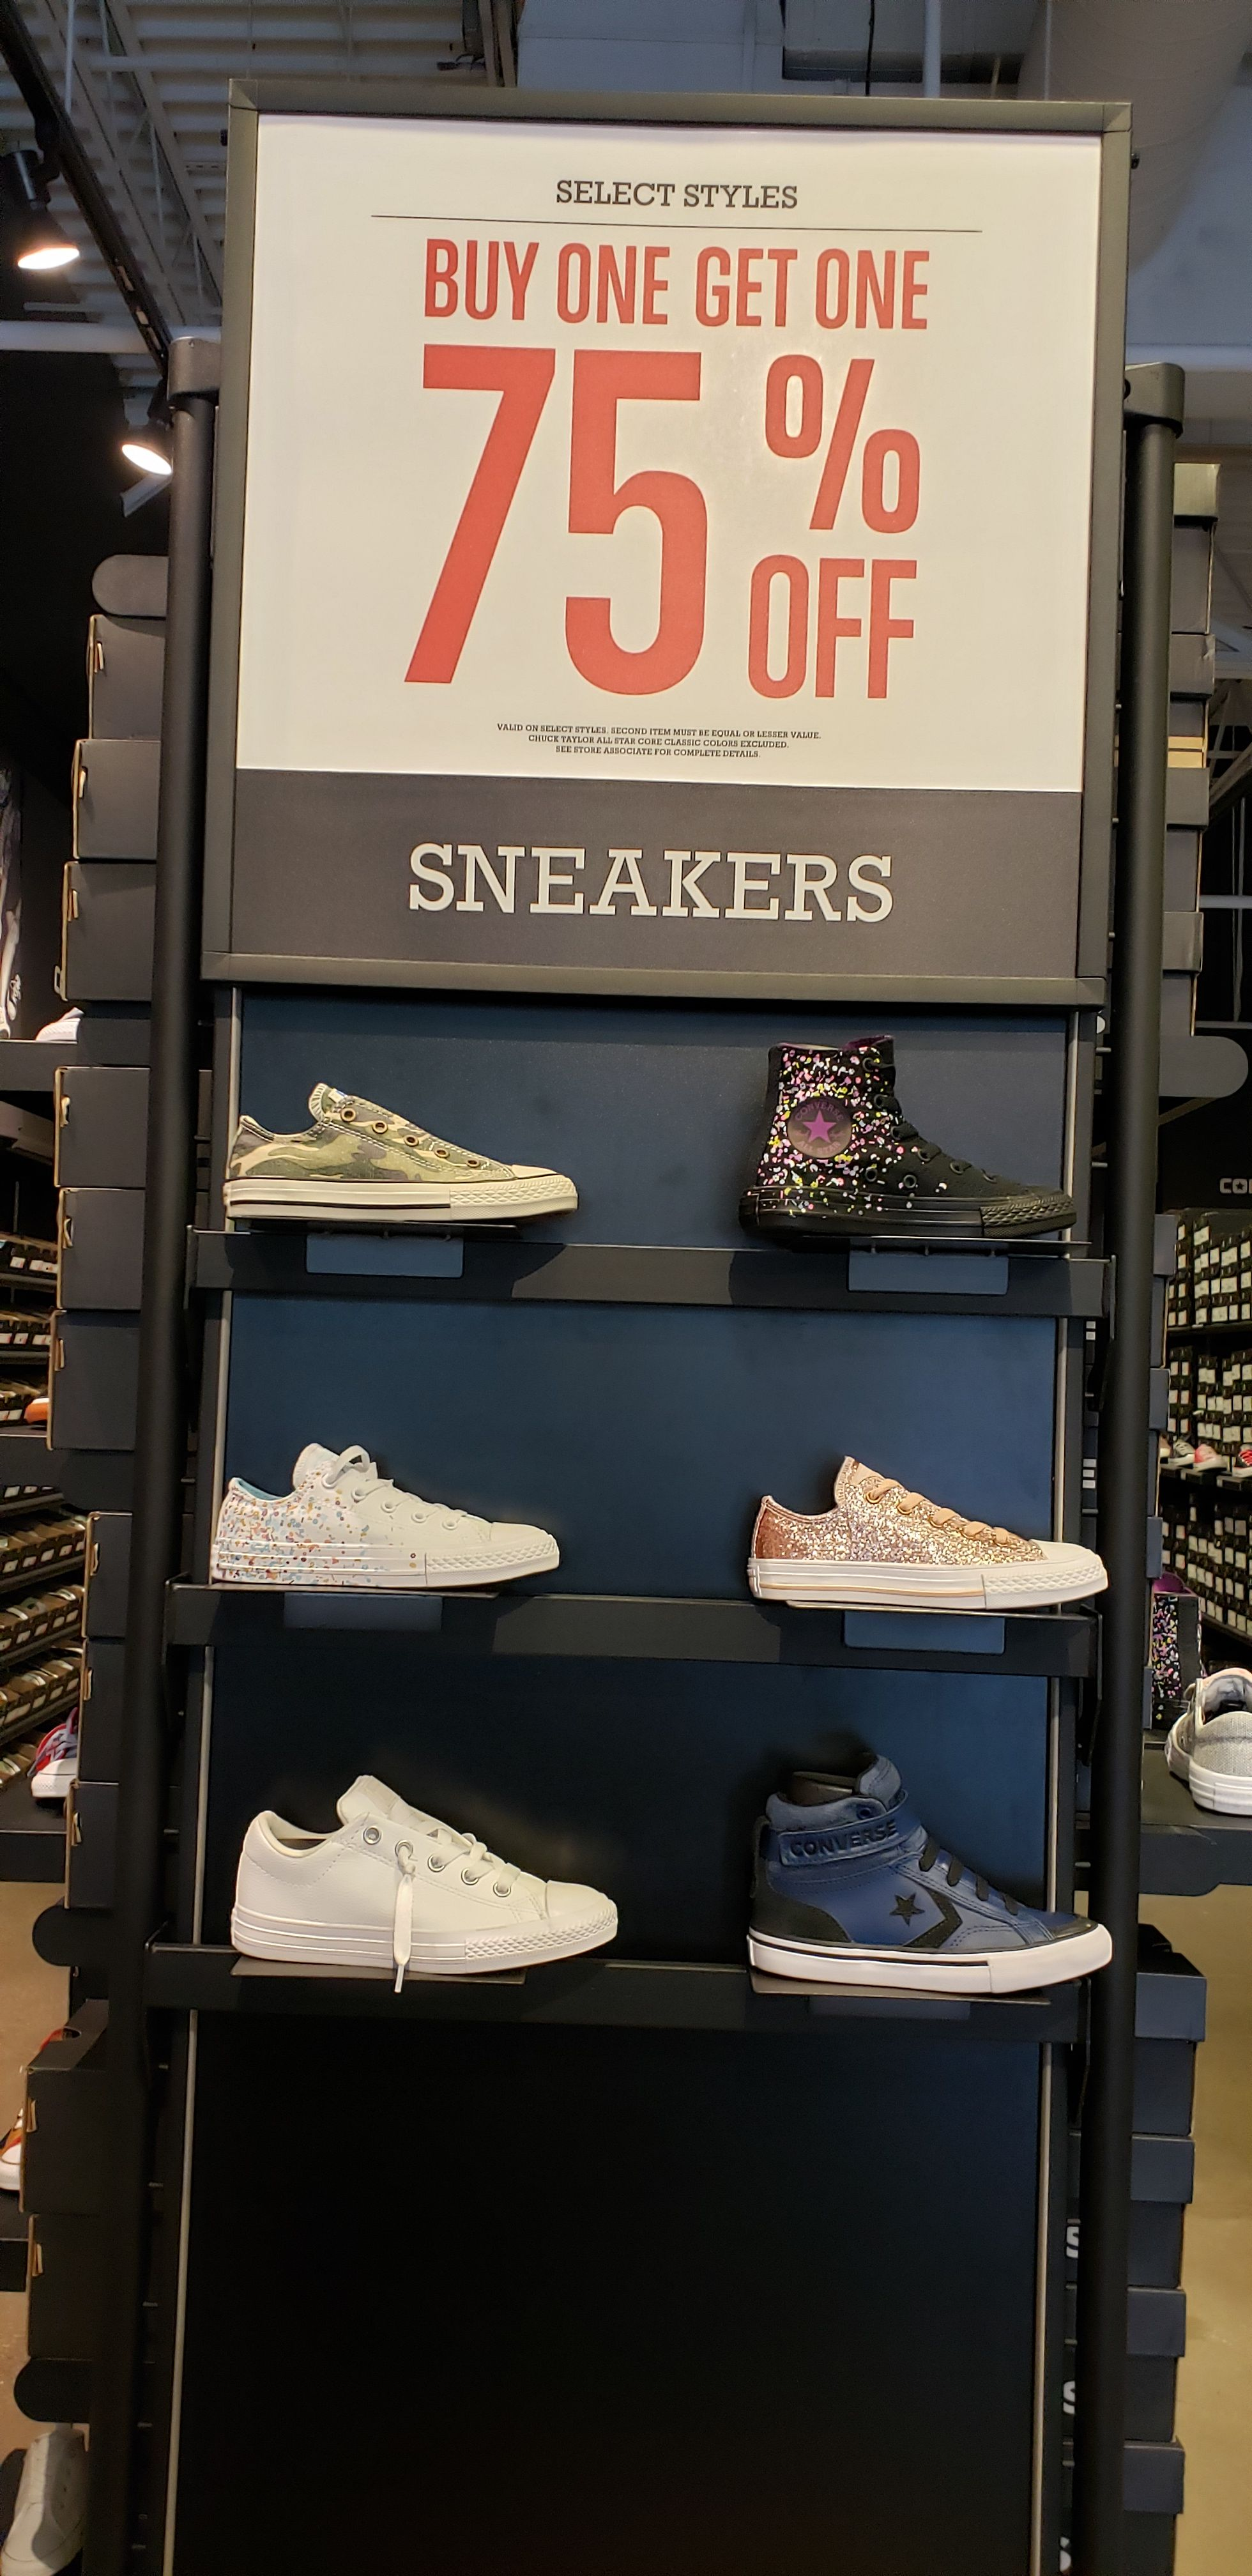 off Sneakers. Exclusions may apply